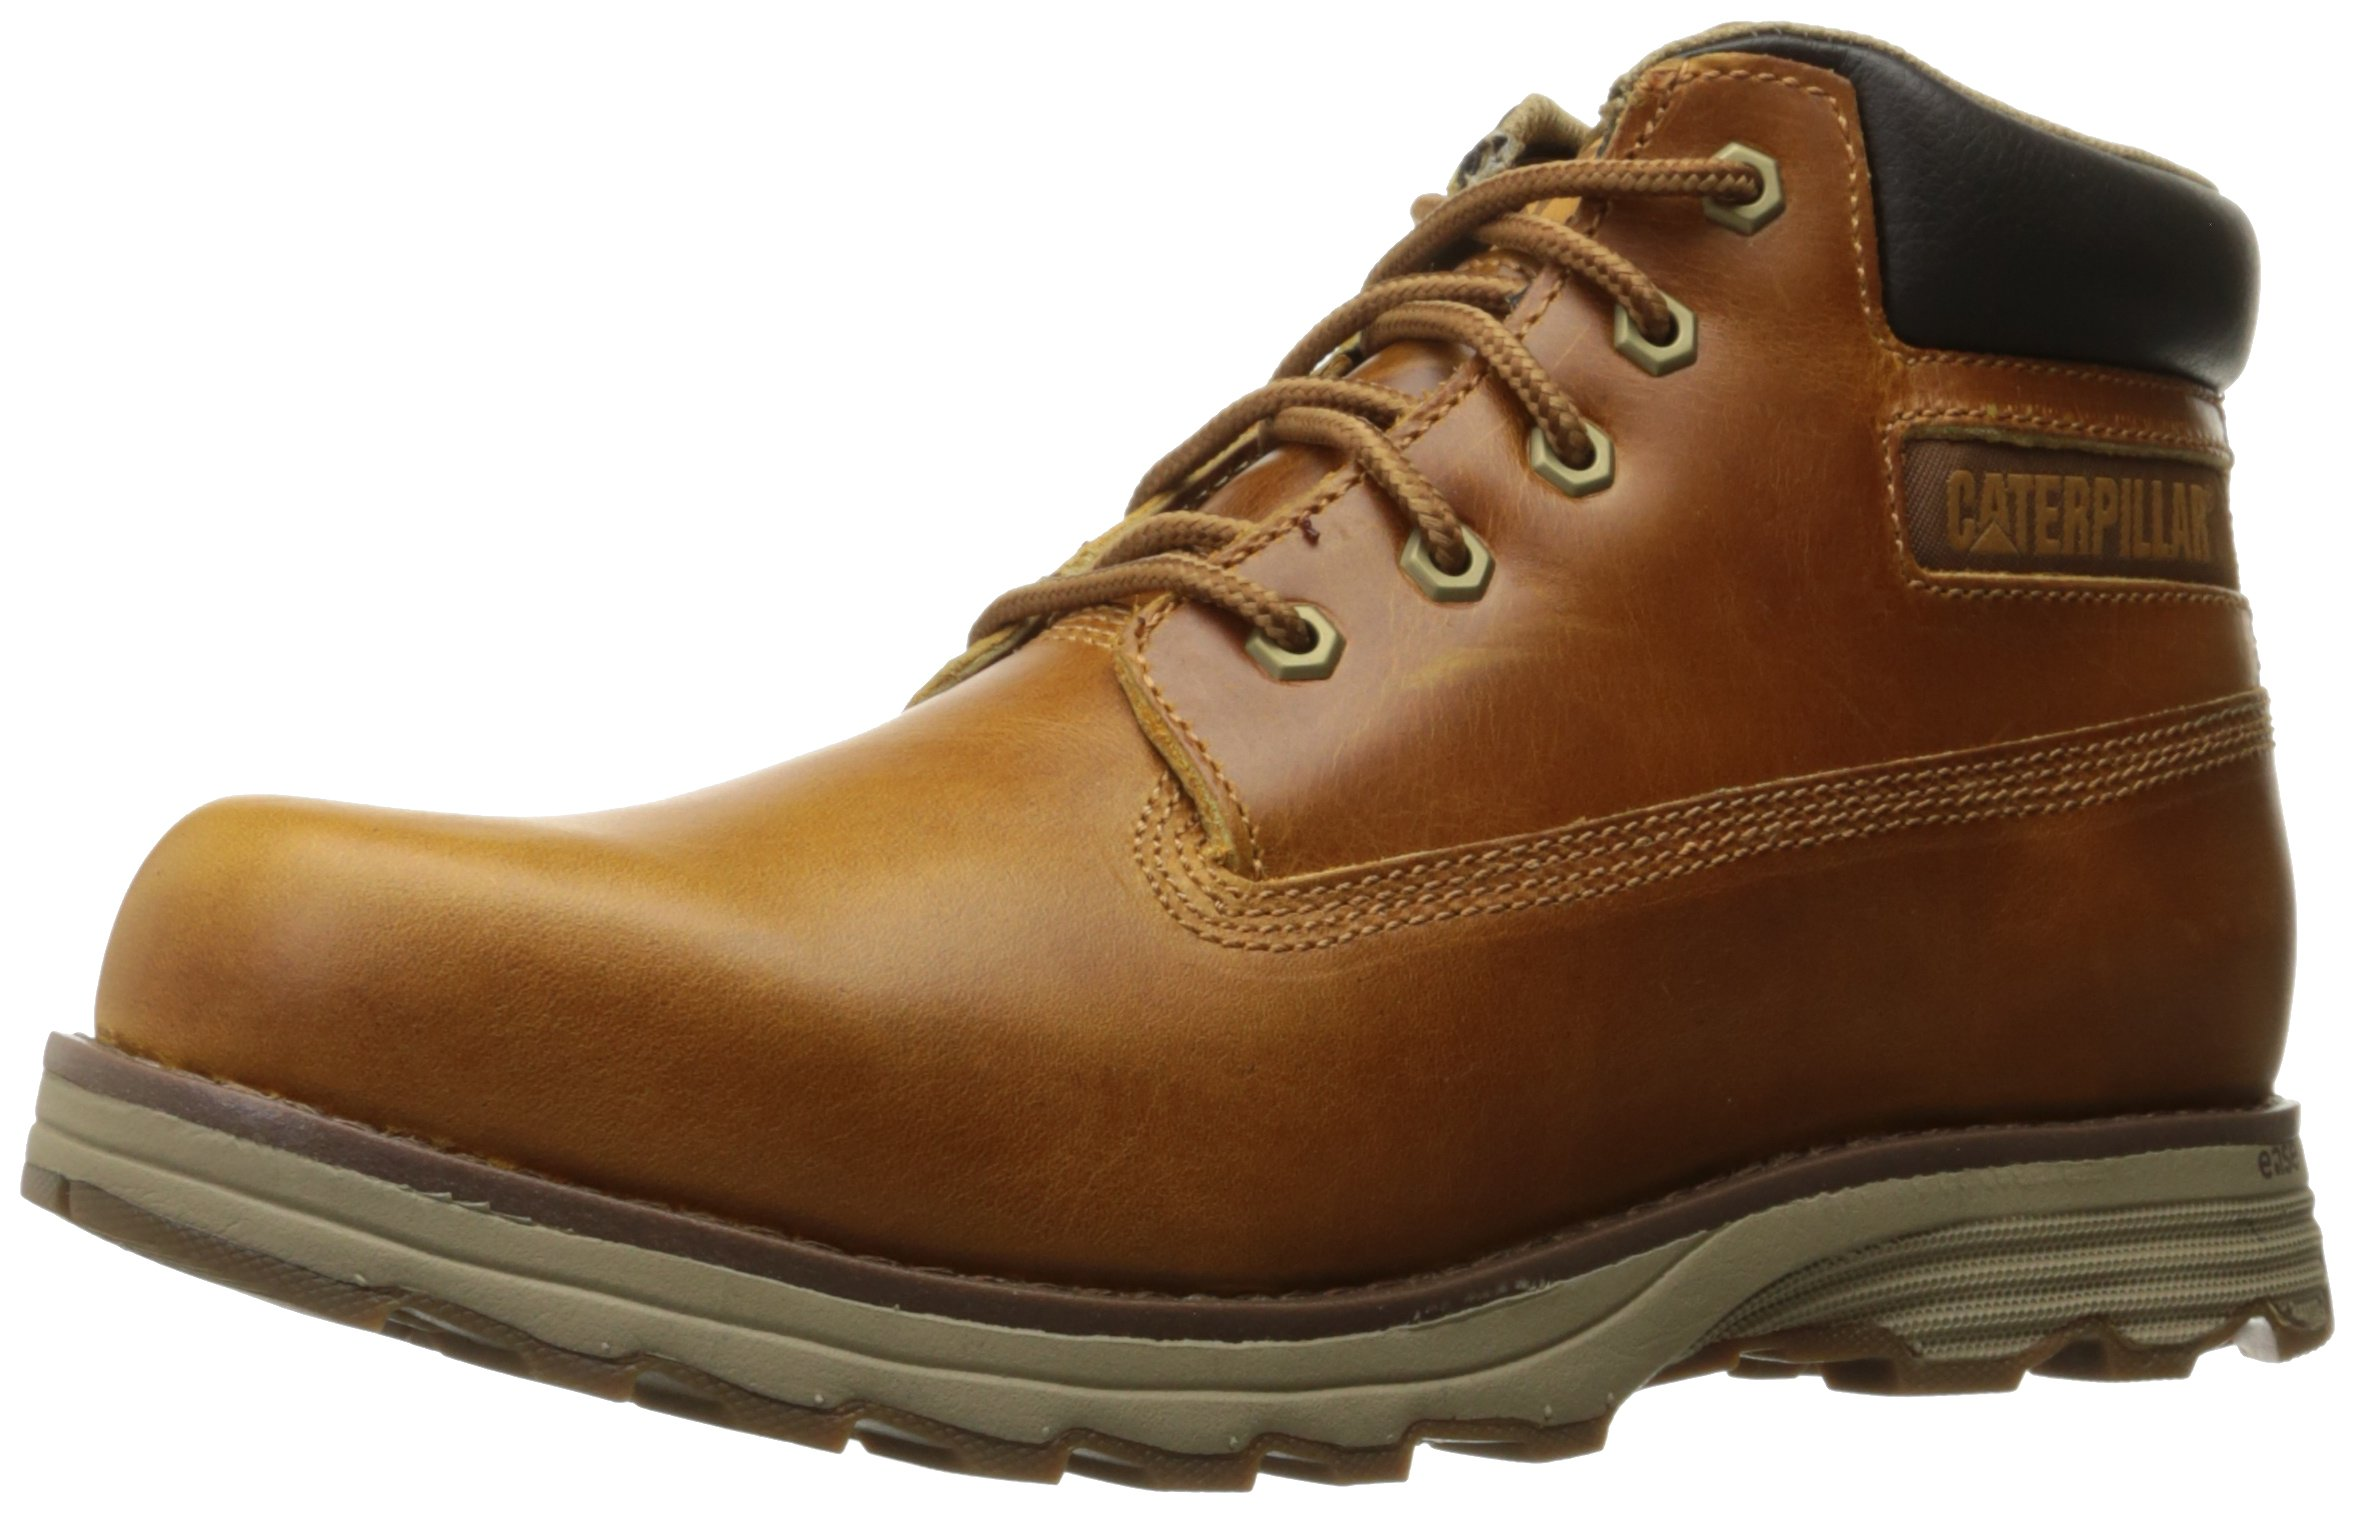 Caterpillar Men's Founder Backpacking Boot, Artisan Gold, 10.5 M US by Caterpillar